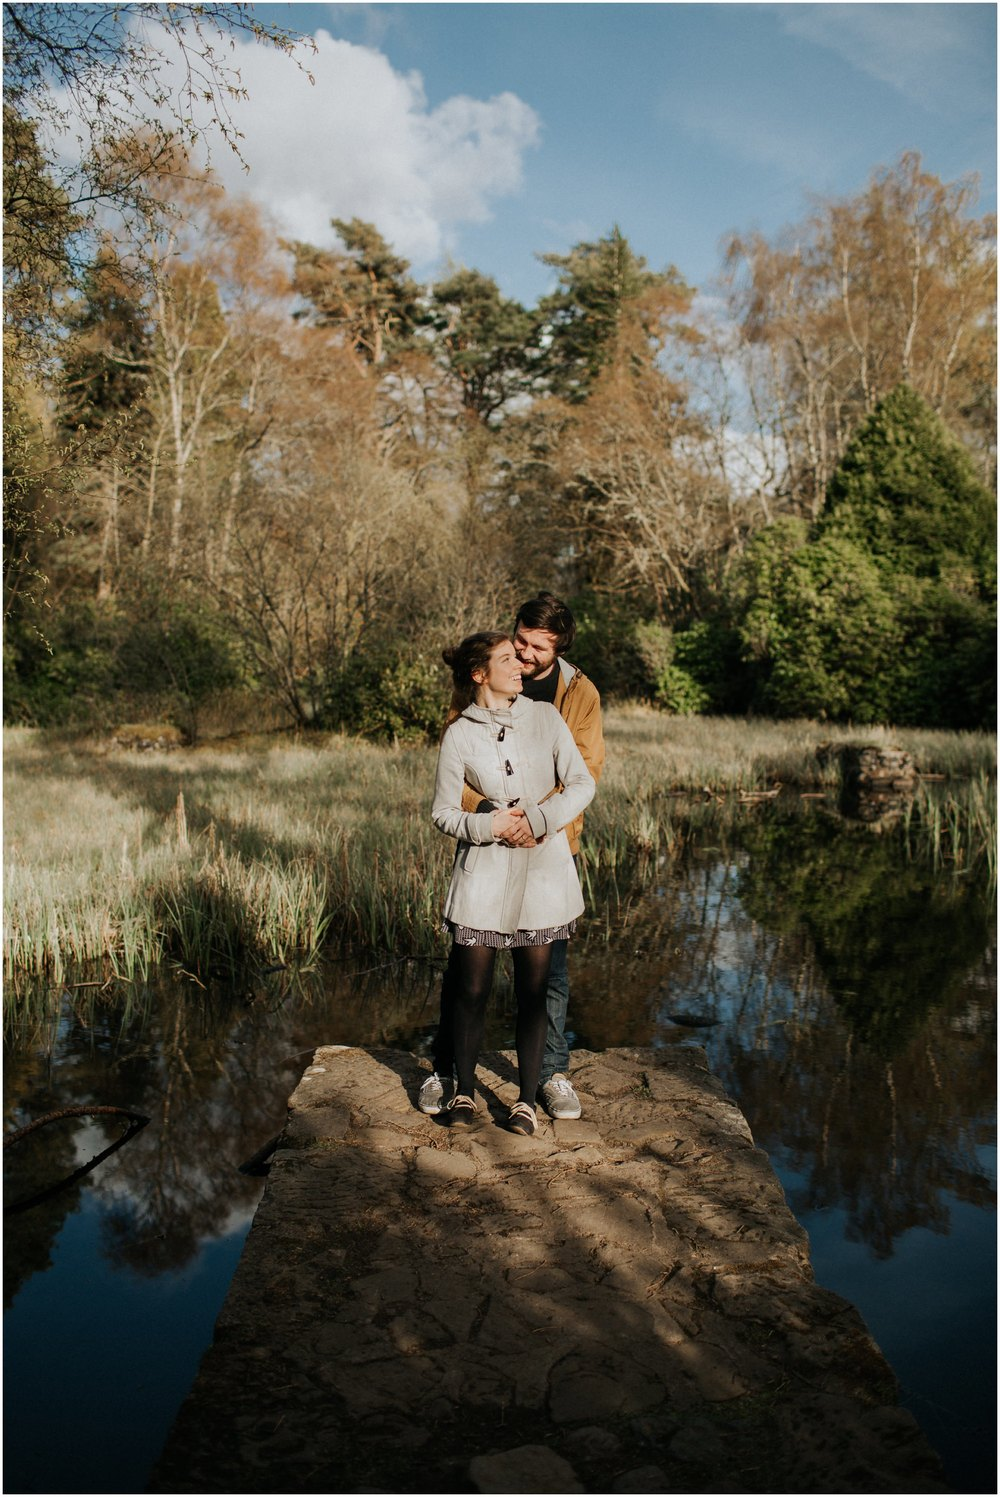 Fraser Thirza Photography 78 Glasgow Wedding Photographer Mugdock Country Park_0001.jpg